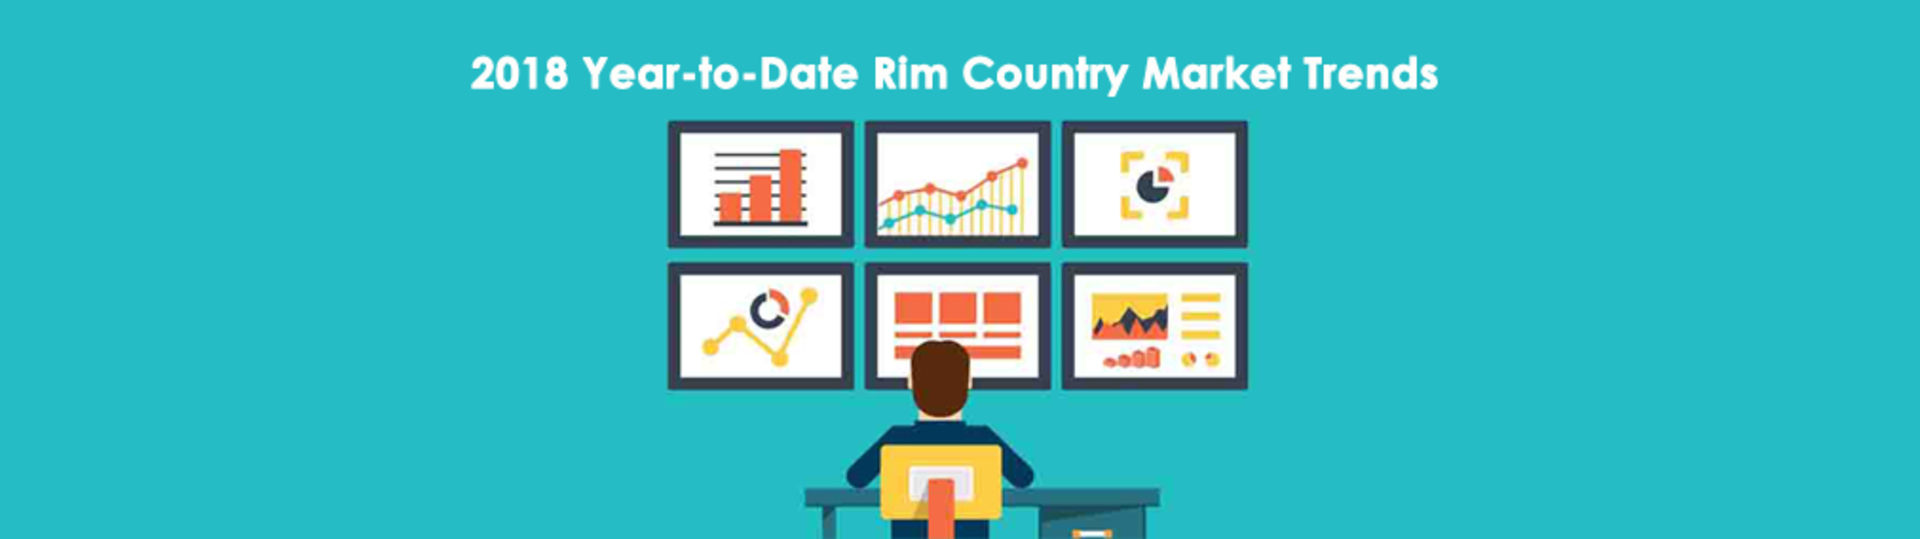 2018 Year-to-Date Rim Country Market Trends